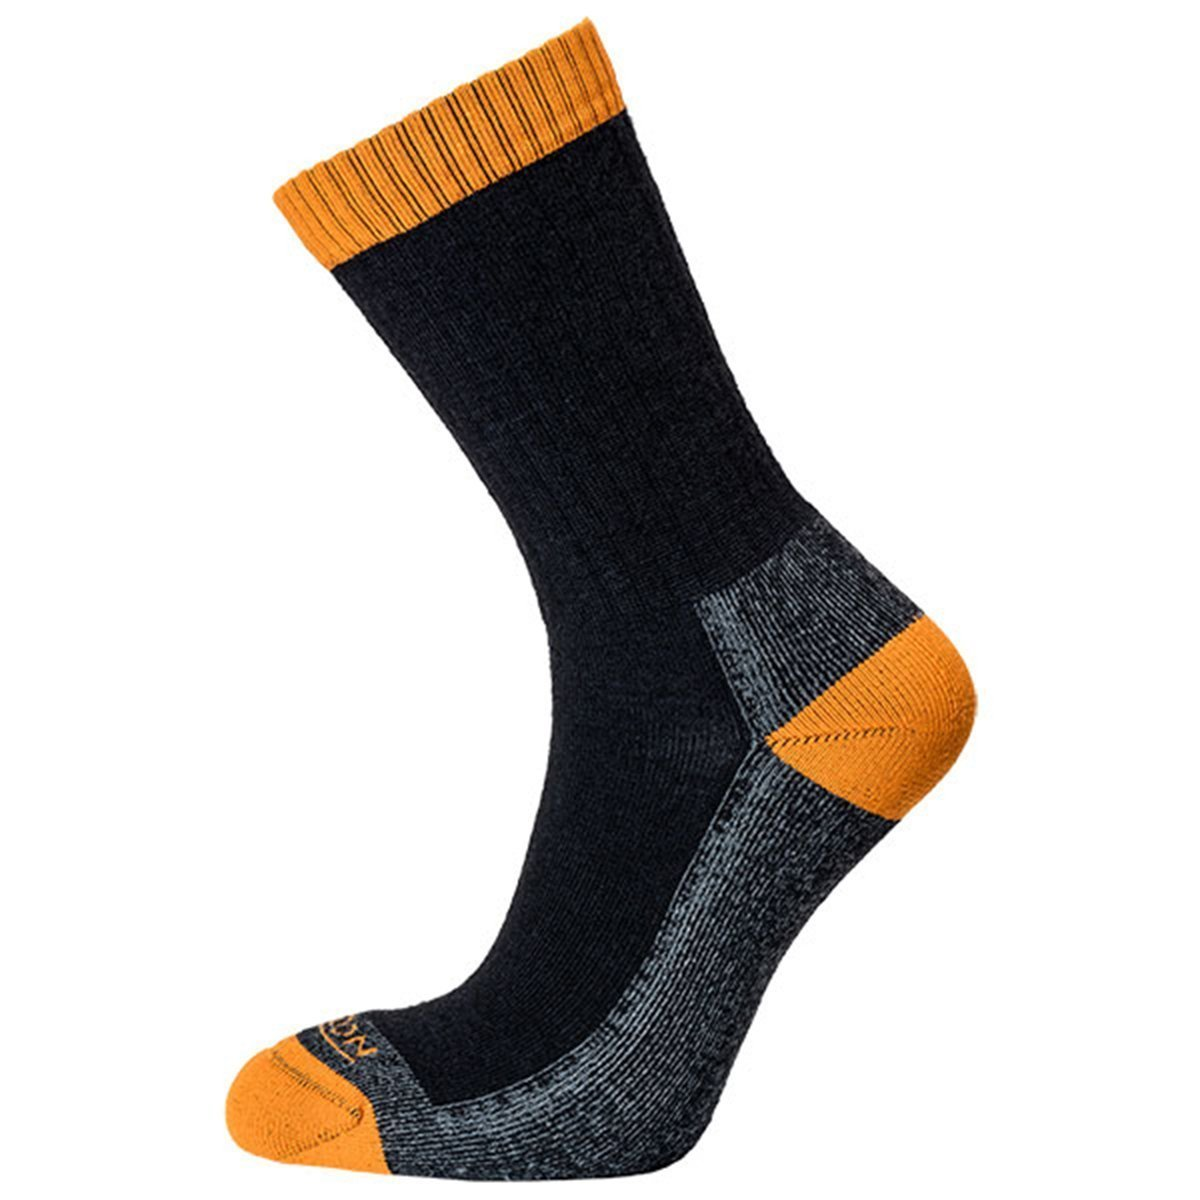 Horizon Socks » Premium Micro Crew | Men's Light Hiking Sock